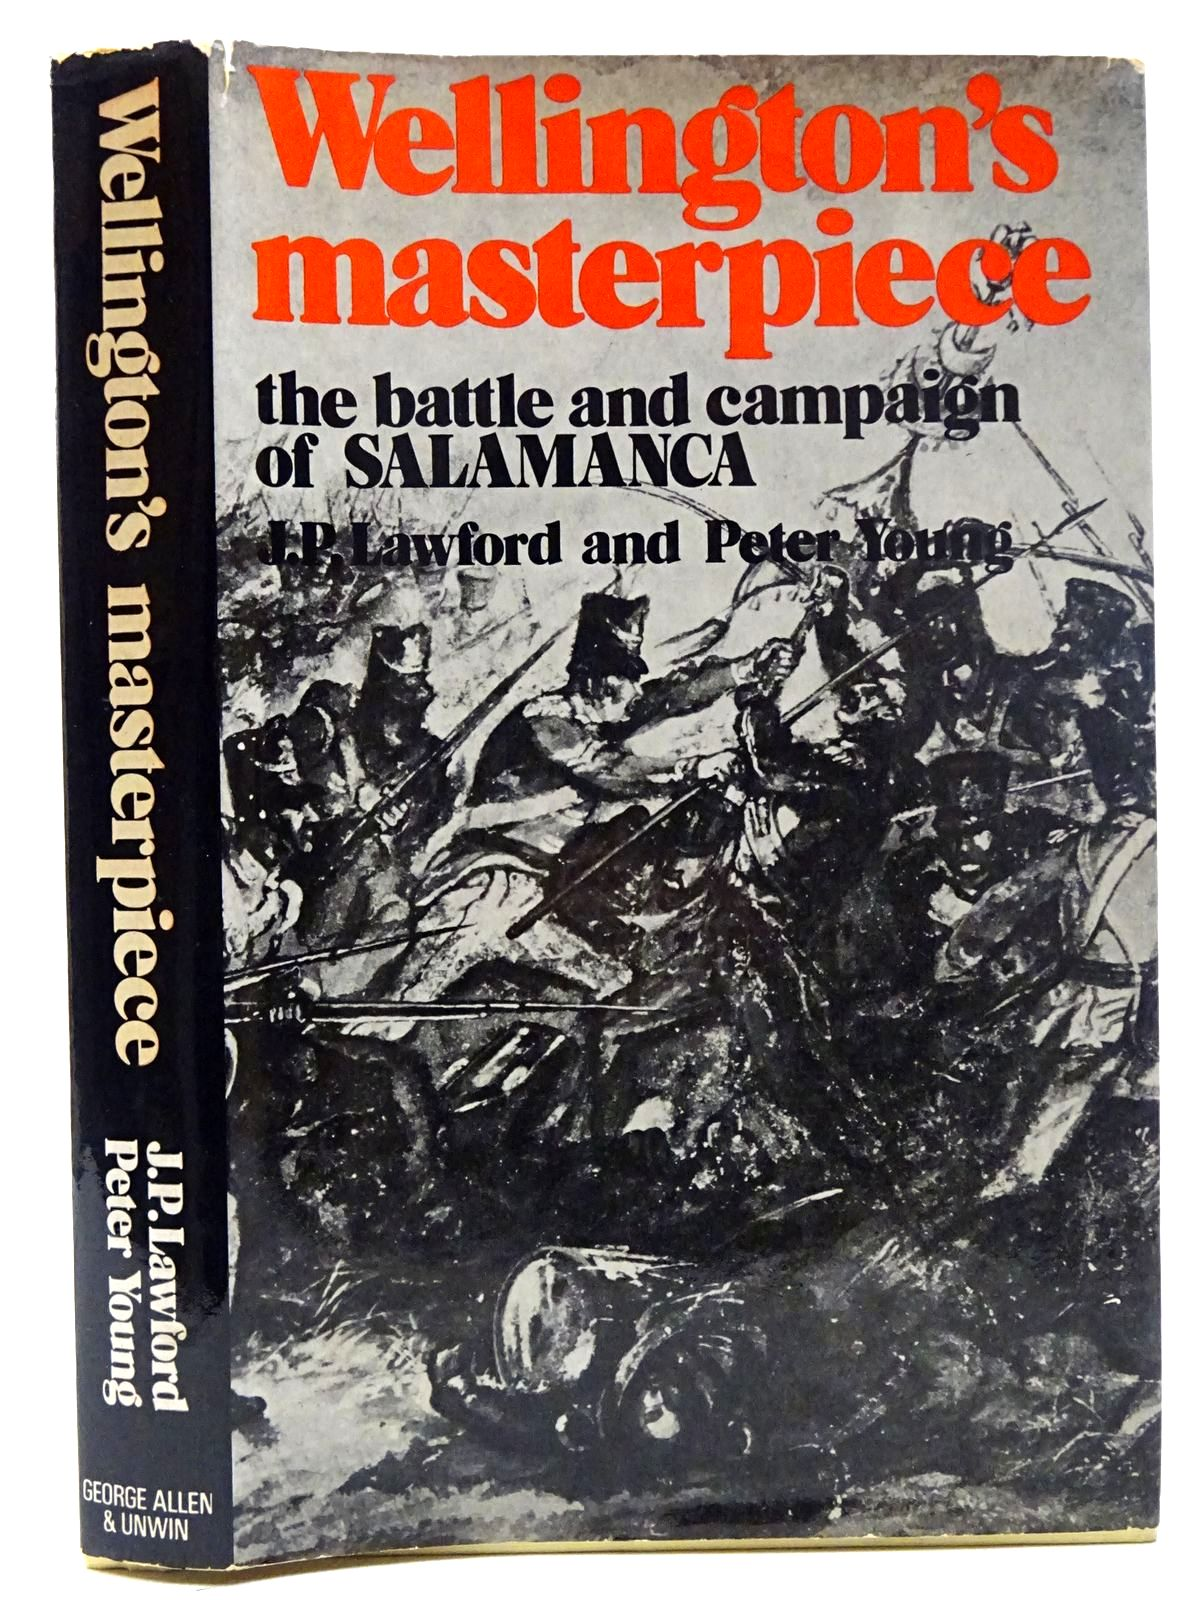 Photo of WELLINGTON'S MASTERPIECE THE BATTLE AND CAMPAIGN OF SALAMANCA written by Lawford, J.P.<br />Young, Peter published by George Allen & Unwin Ltd. (STOCK CODE: 2126466)  for sale by Stella & Rose's Books